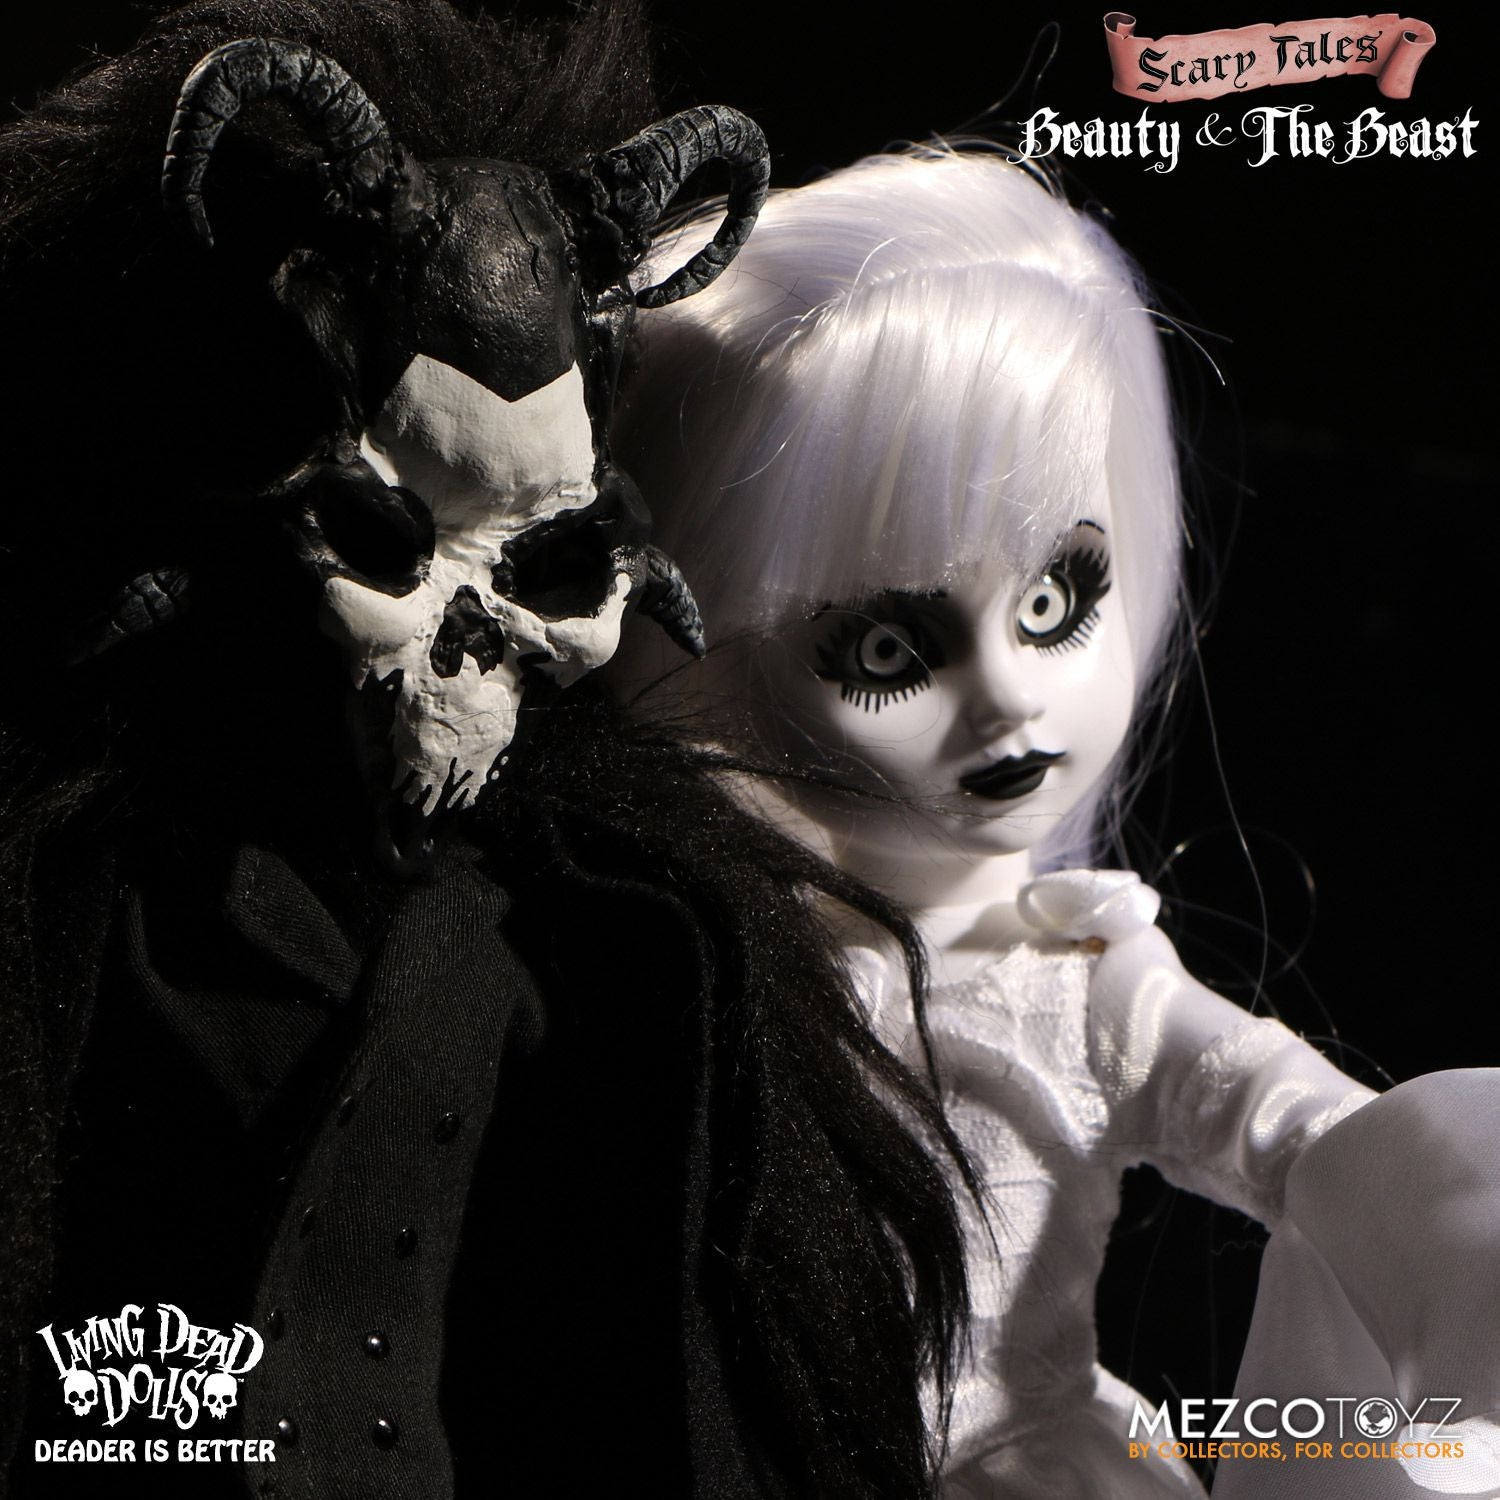 LIVING DEAD DOLLS: BEAUTY AND THE BEAST SET (PRE-ORDER)